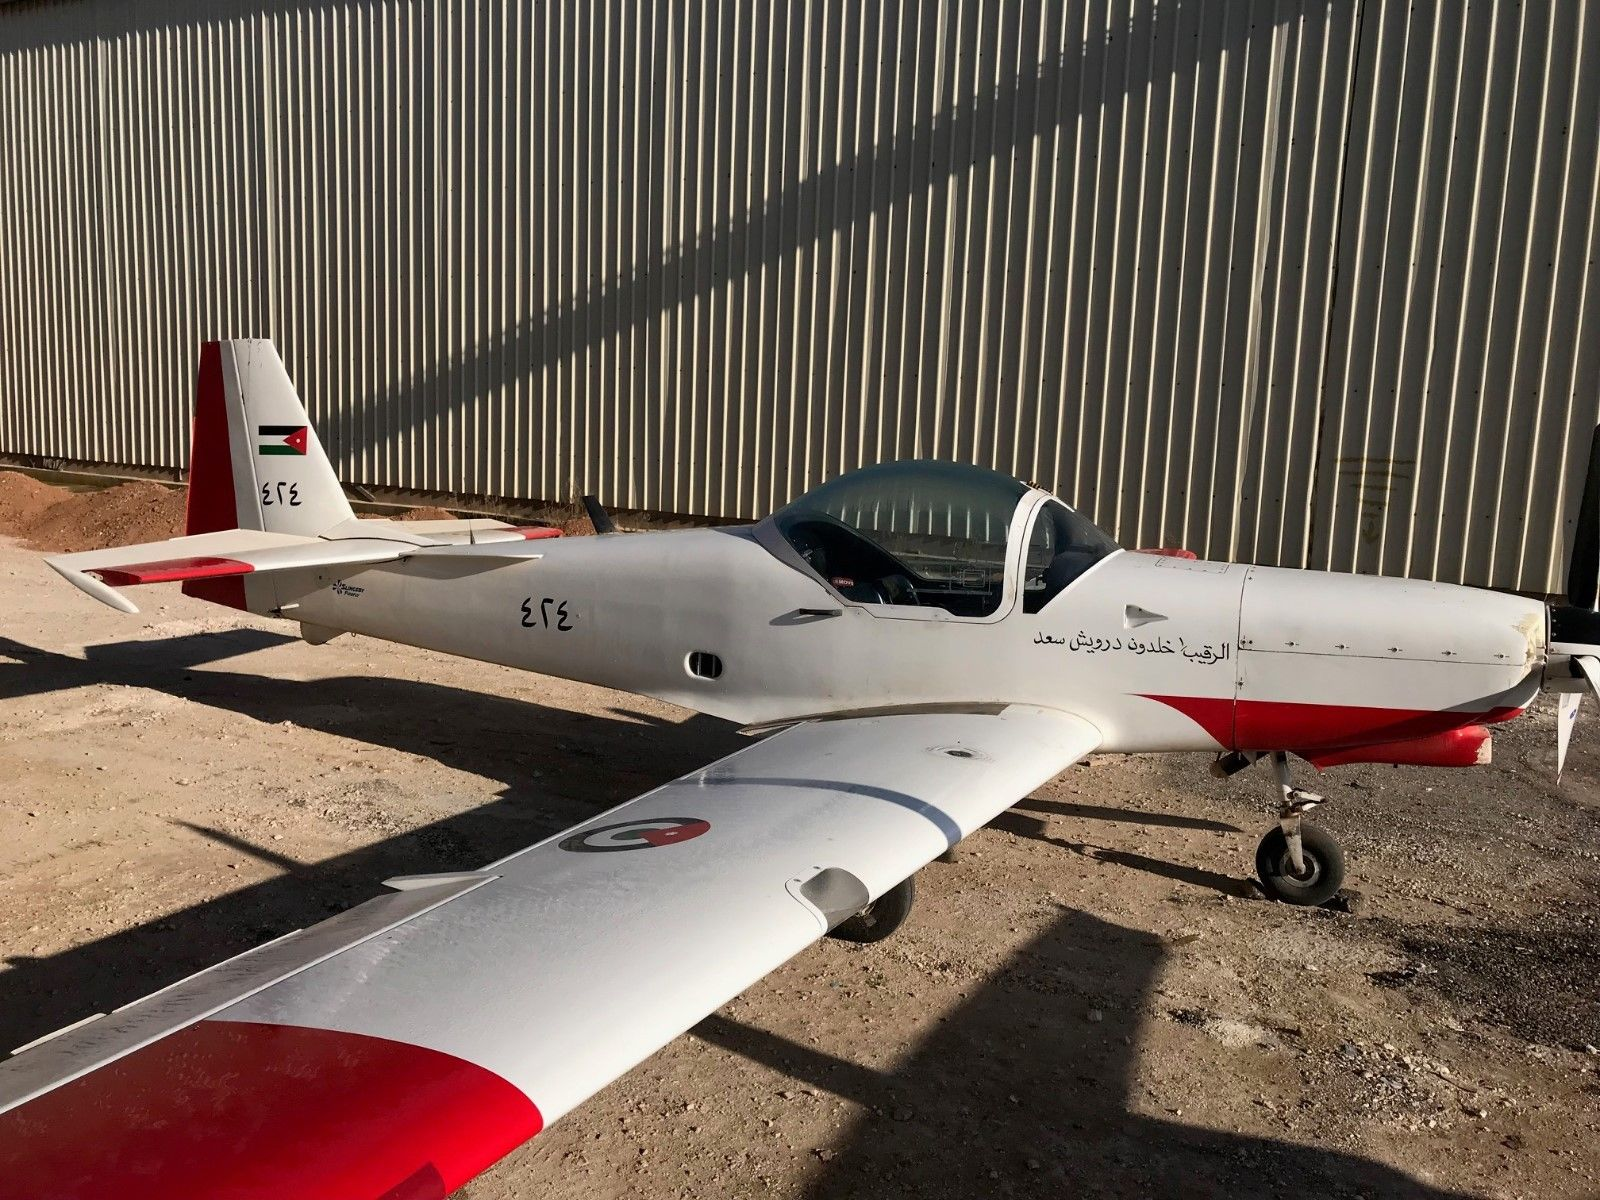 aerobatic 1996 Slingsby aircraft for sale